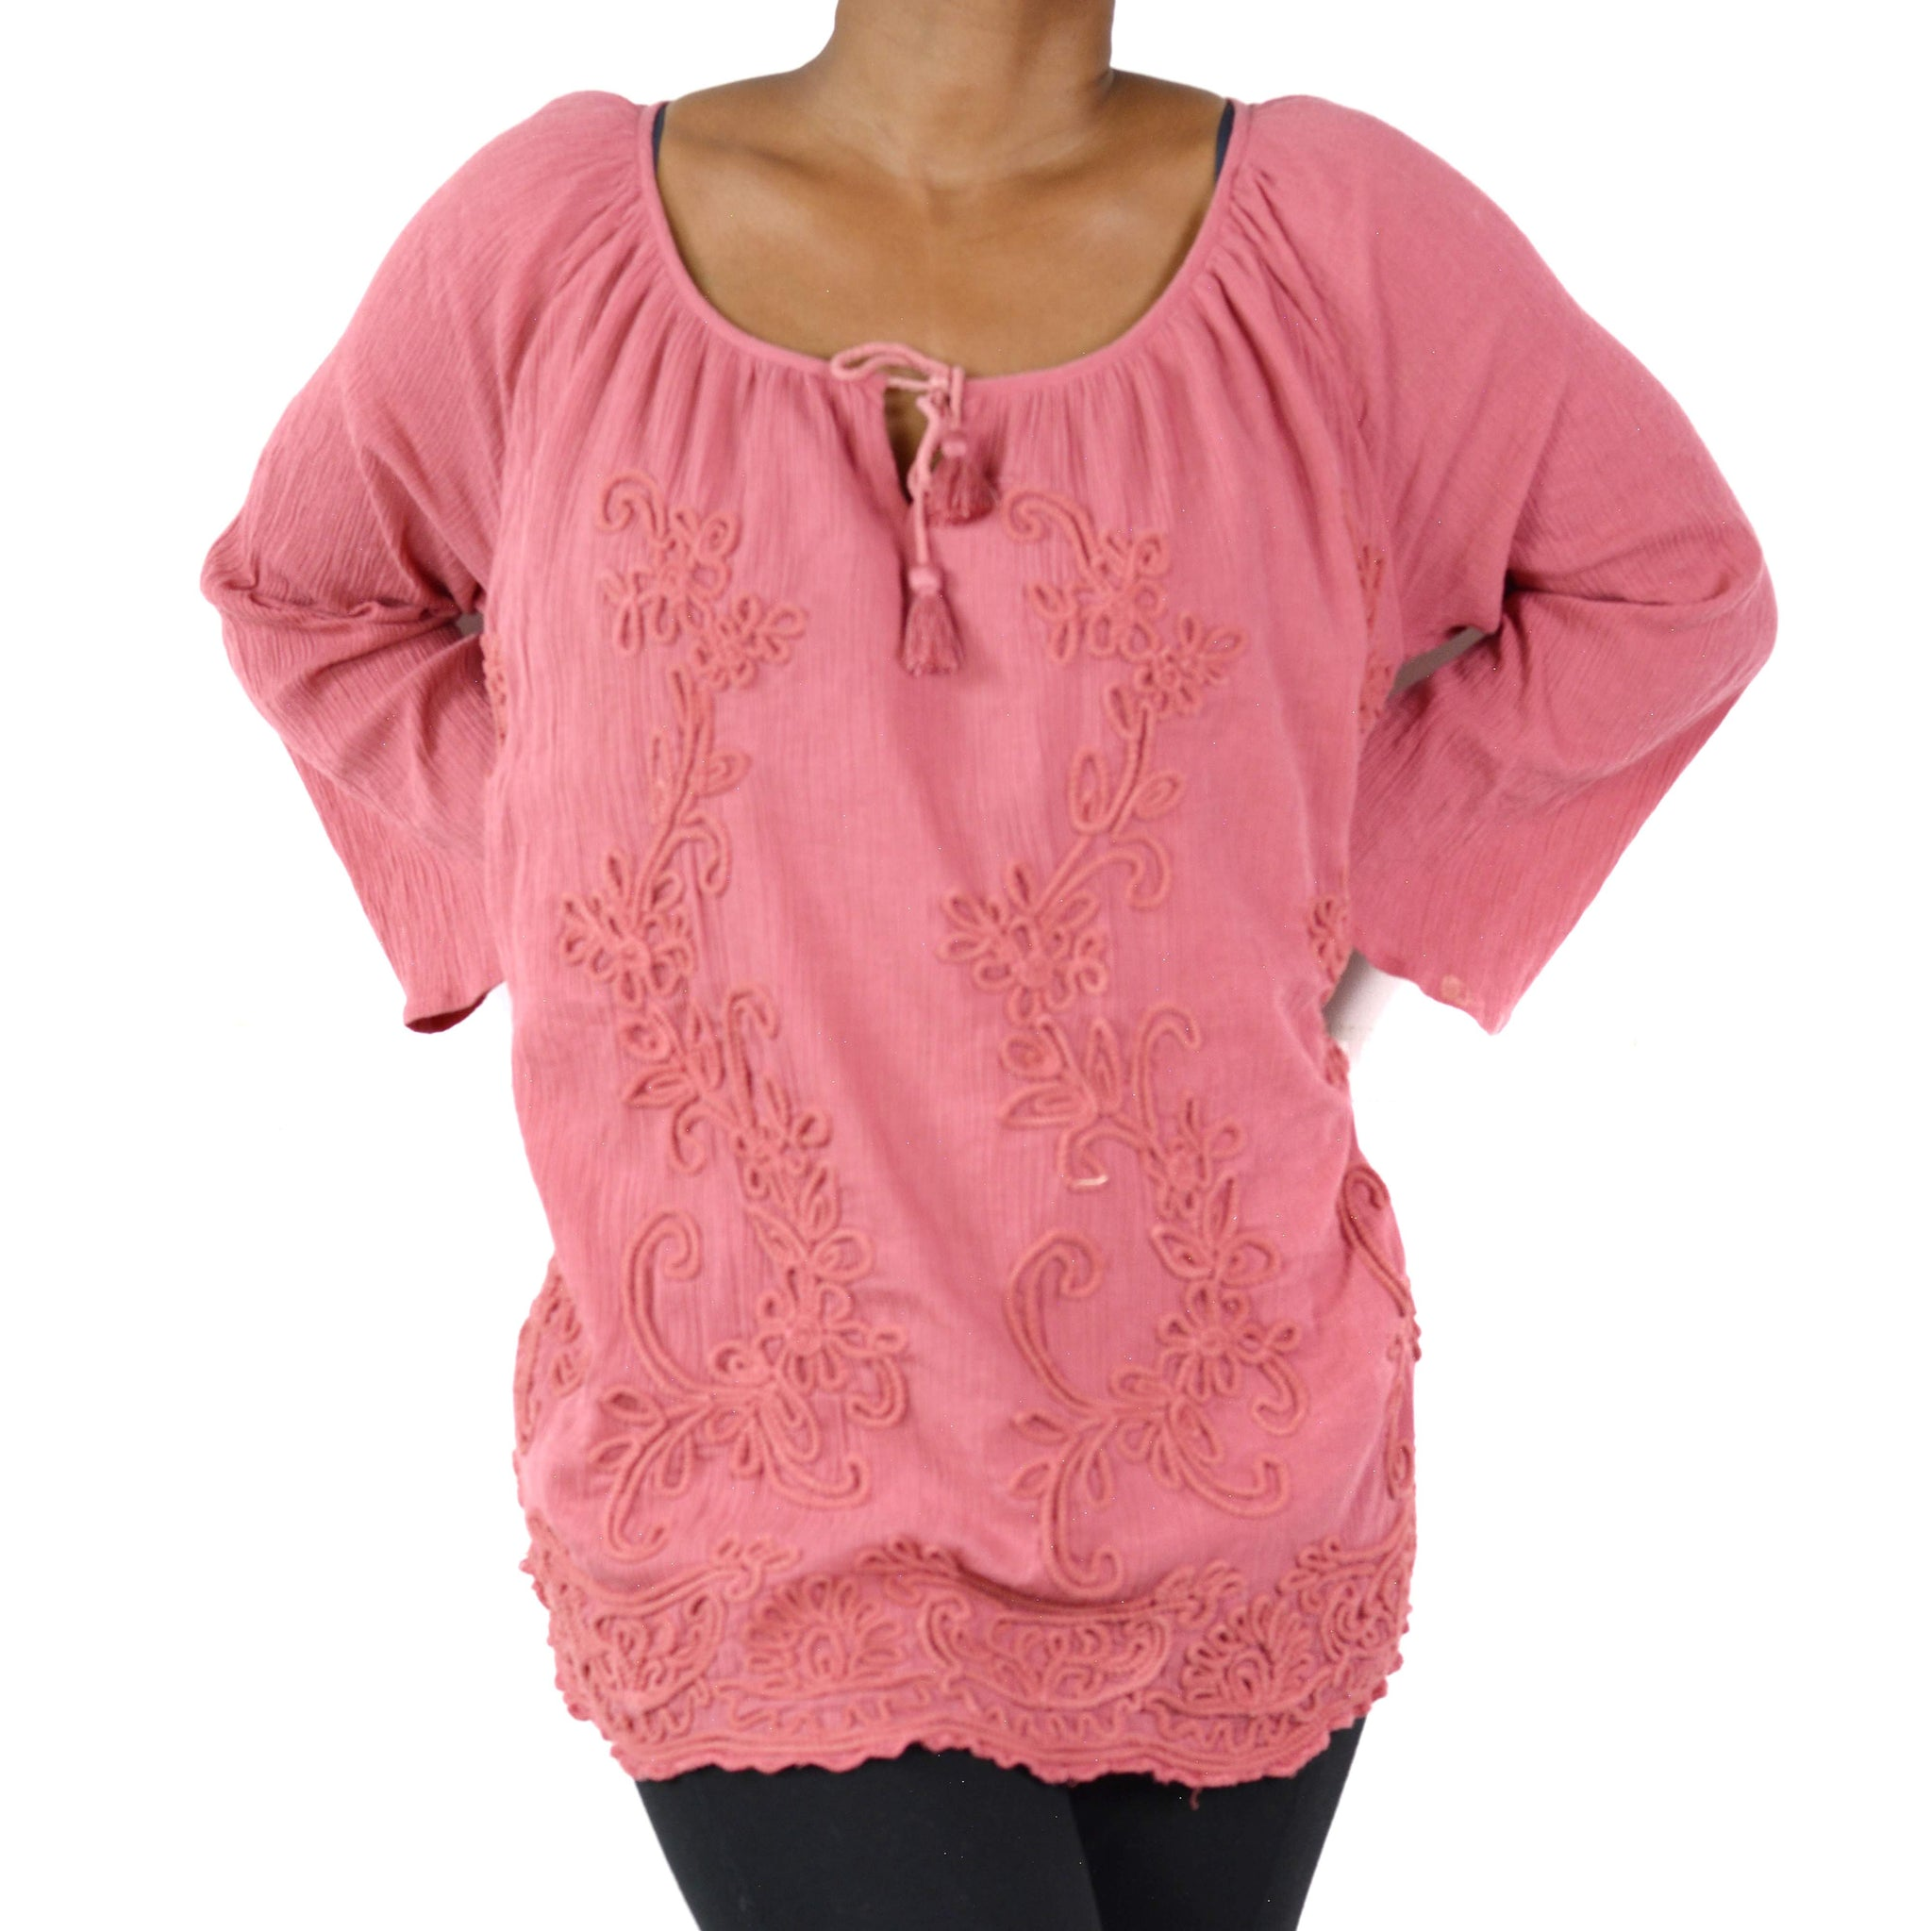 Soft Surroundings Winding Vines Tunic Top Size Large